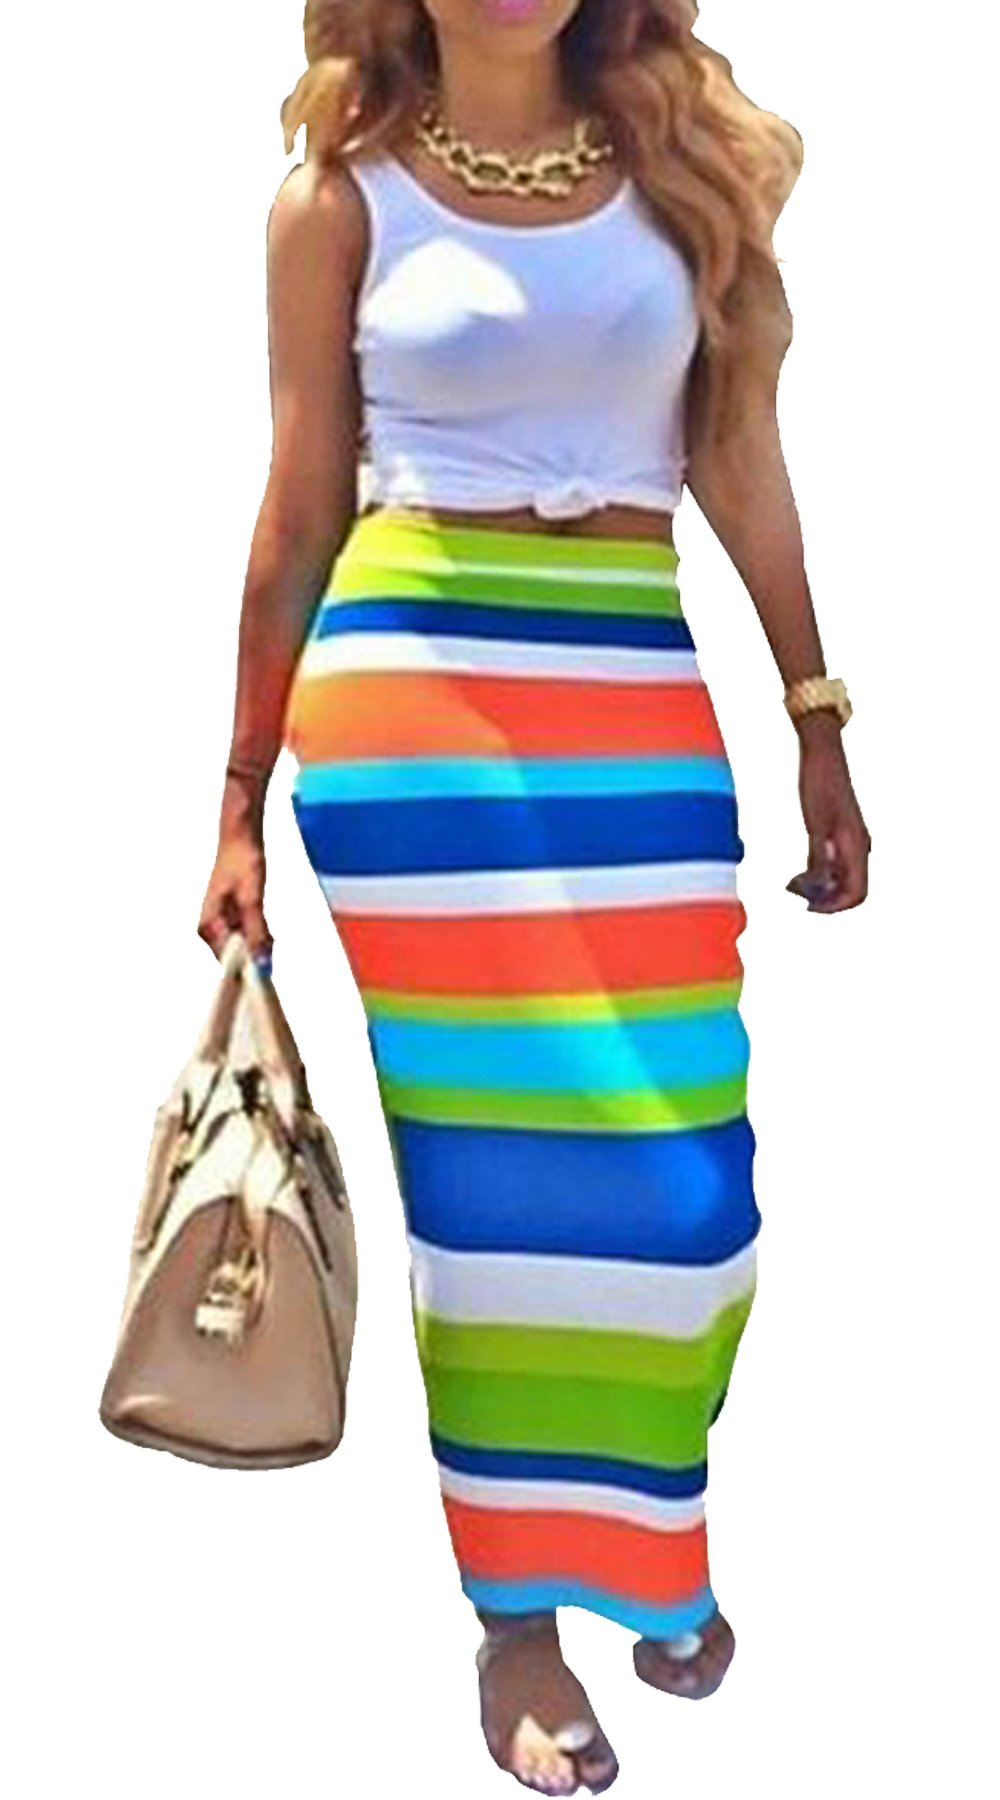 Womens Crop Top Midi Skirt Outfit Two Piece Bodycon Maxi Dress XL Multi by Leezeshaw